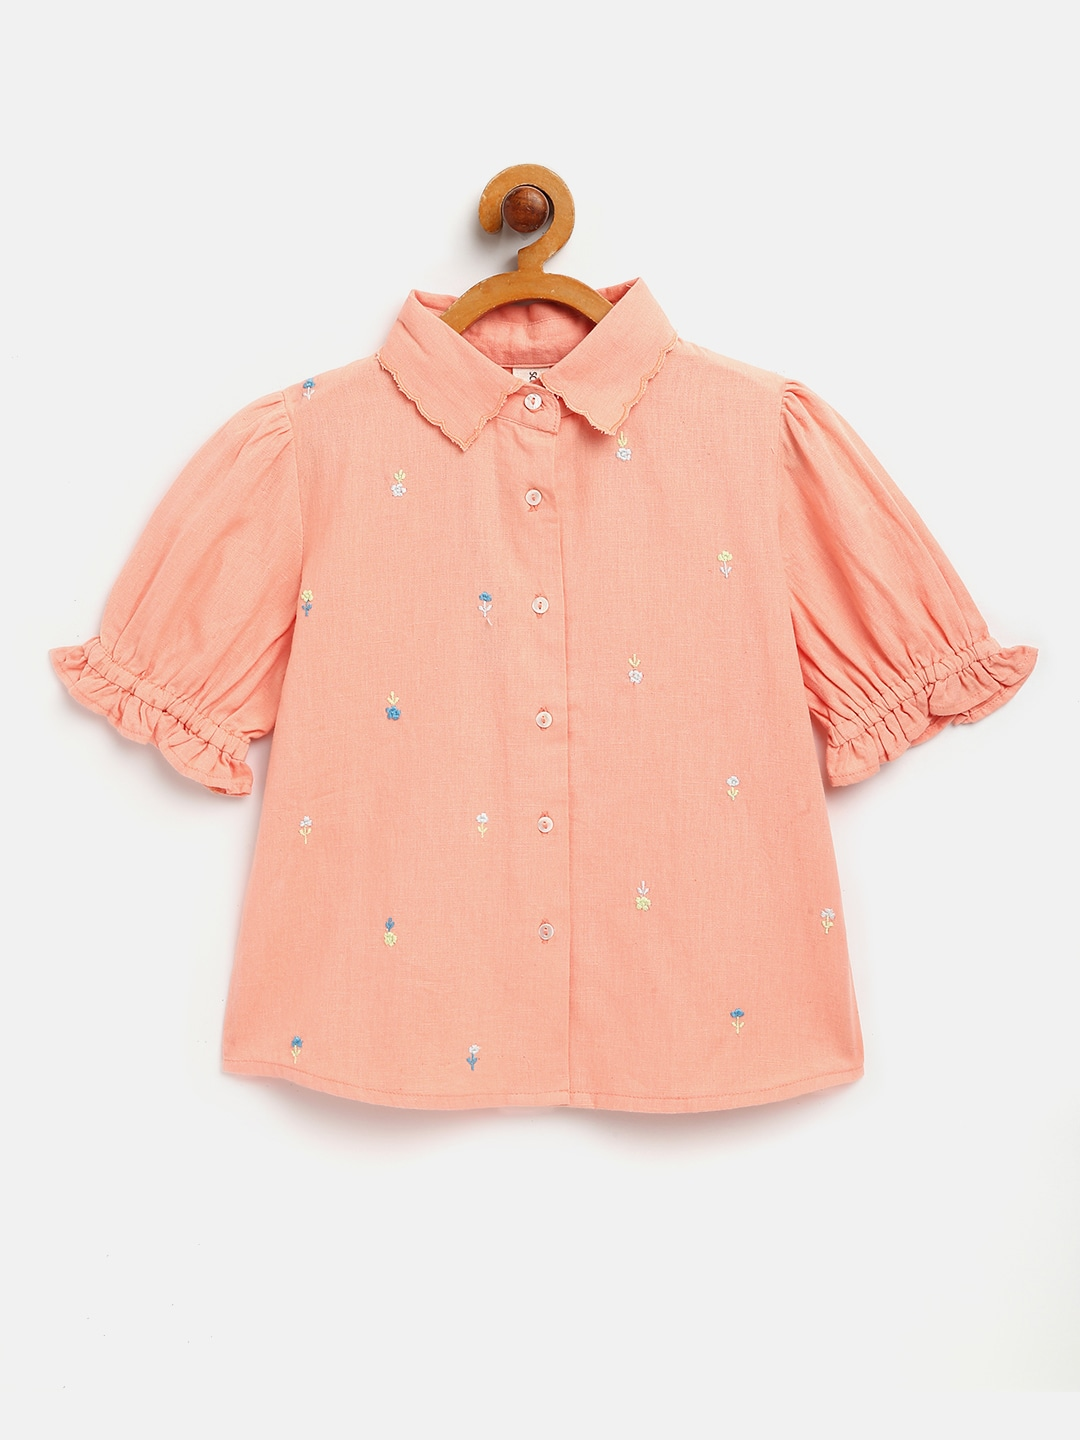 Embroidered shirt top with short sleeves